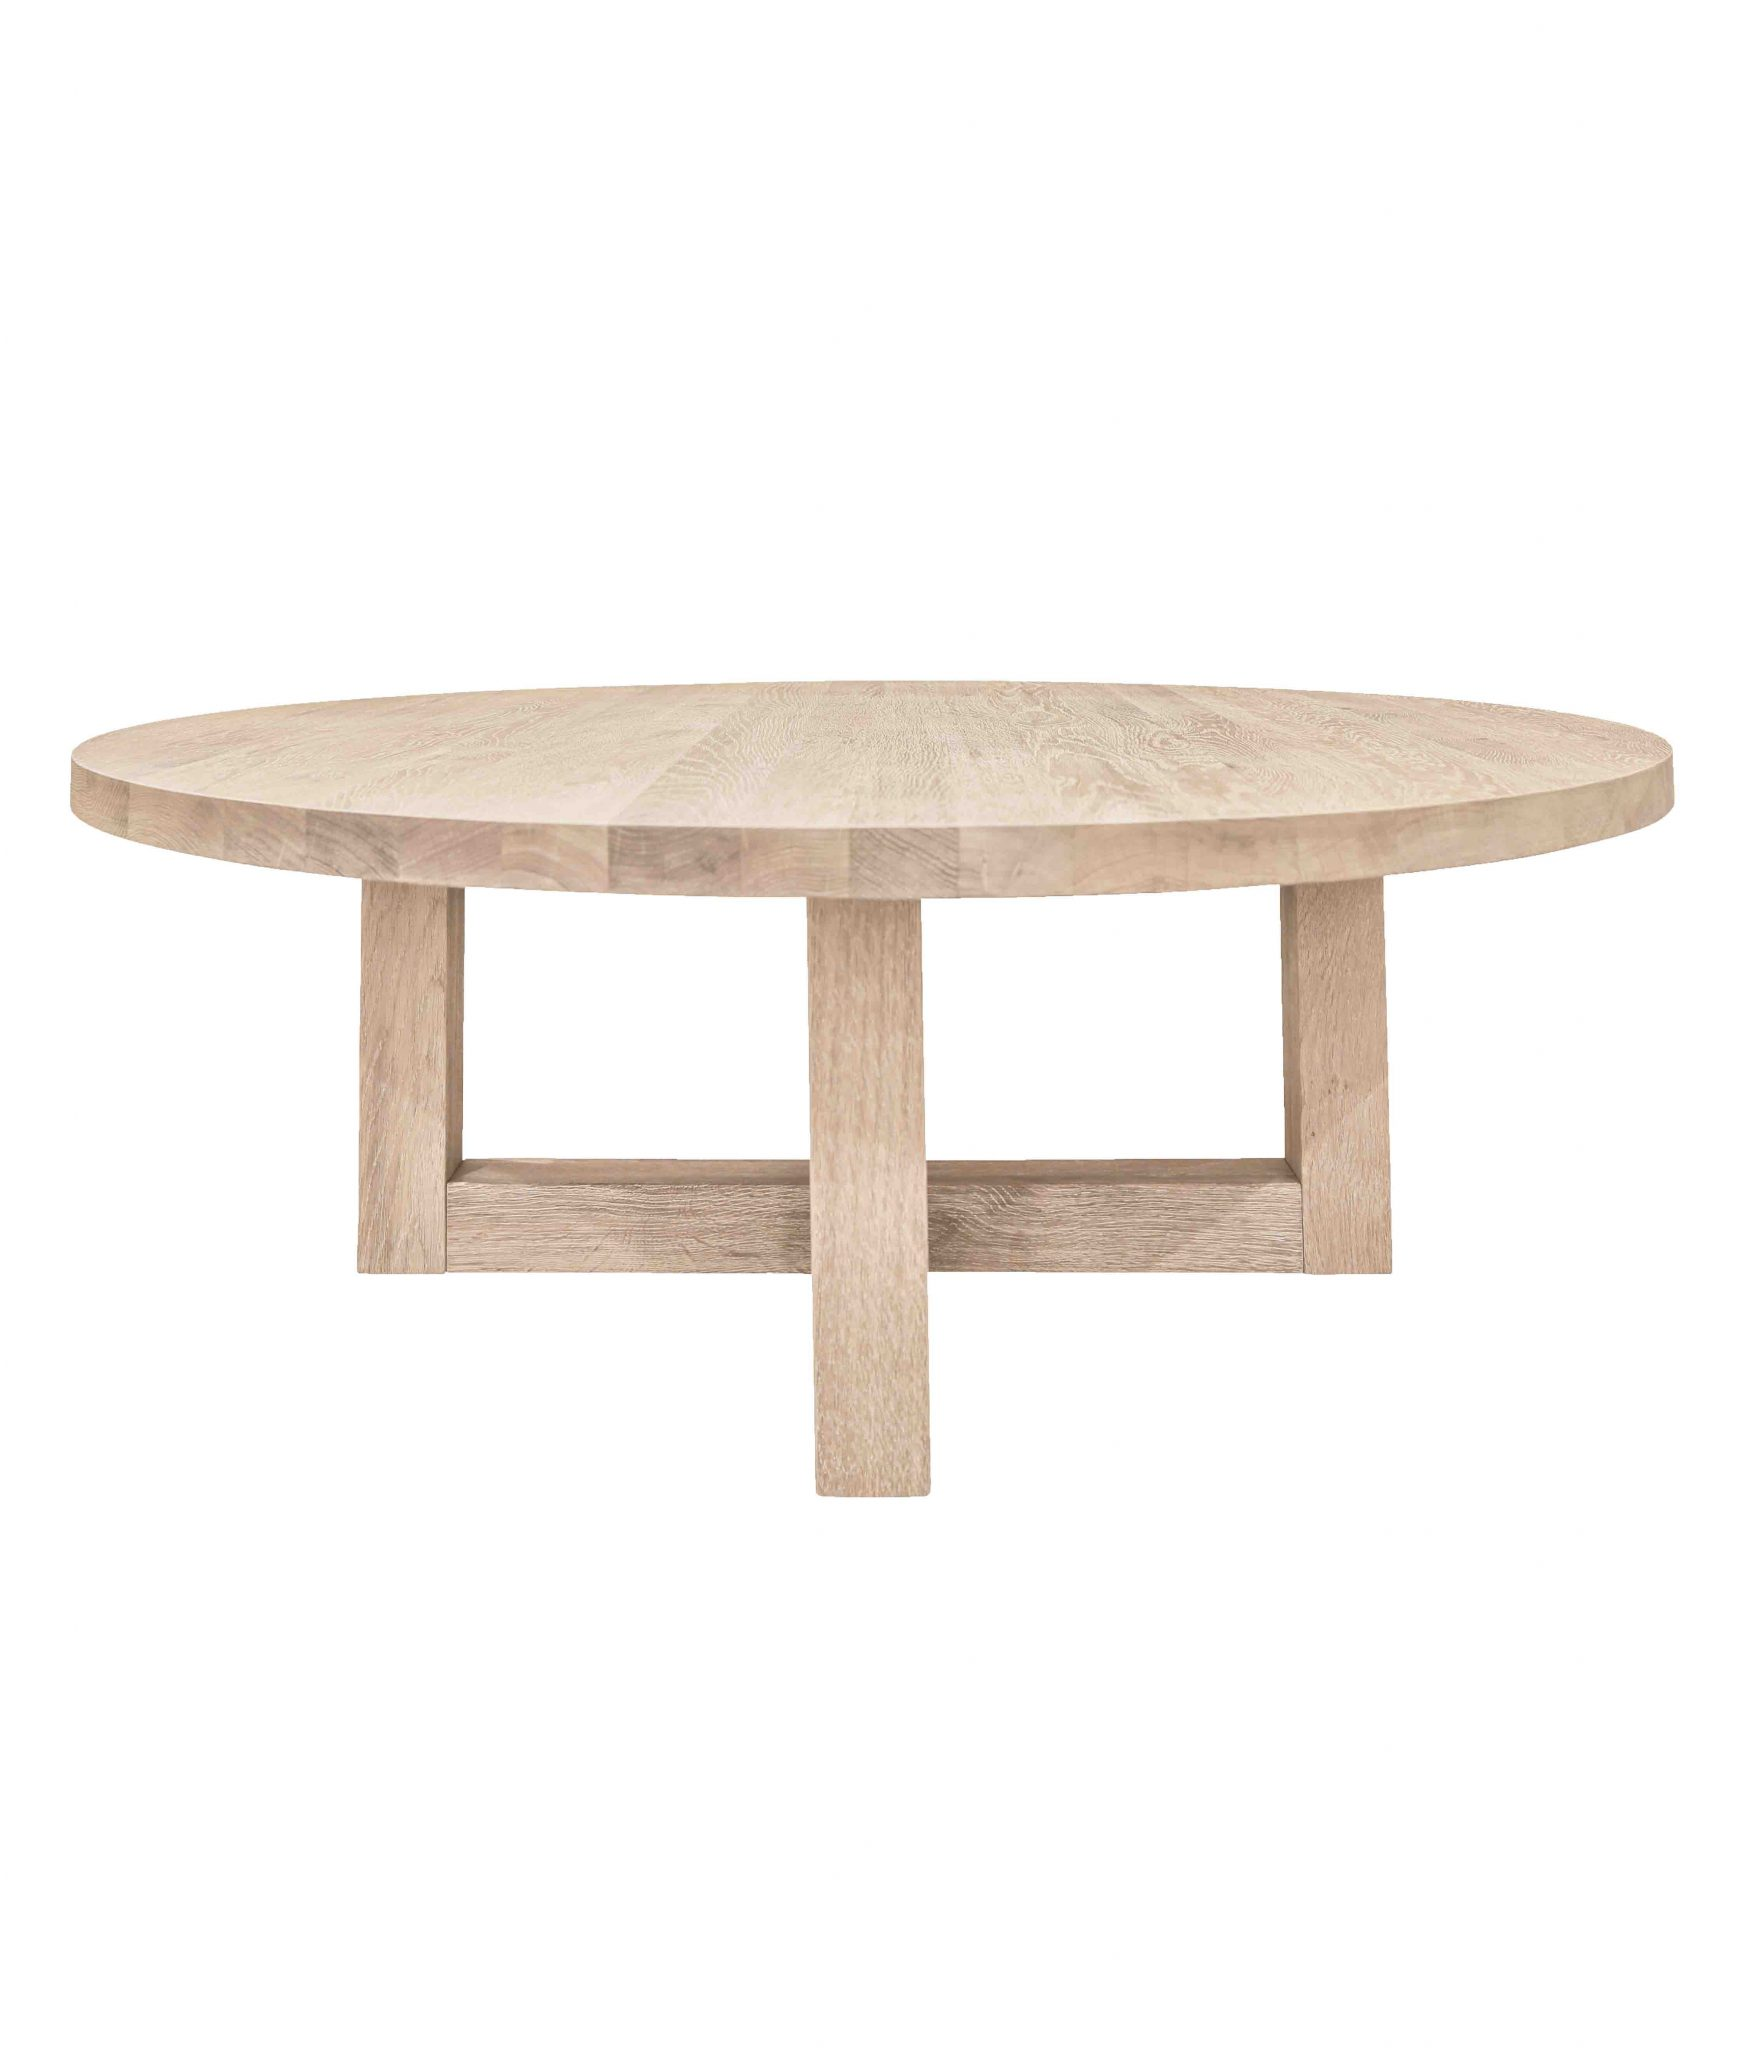 Round Coffee Table Oak: Solid Oak Round Coffee Table